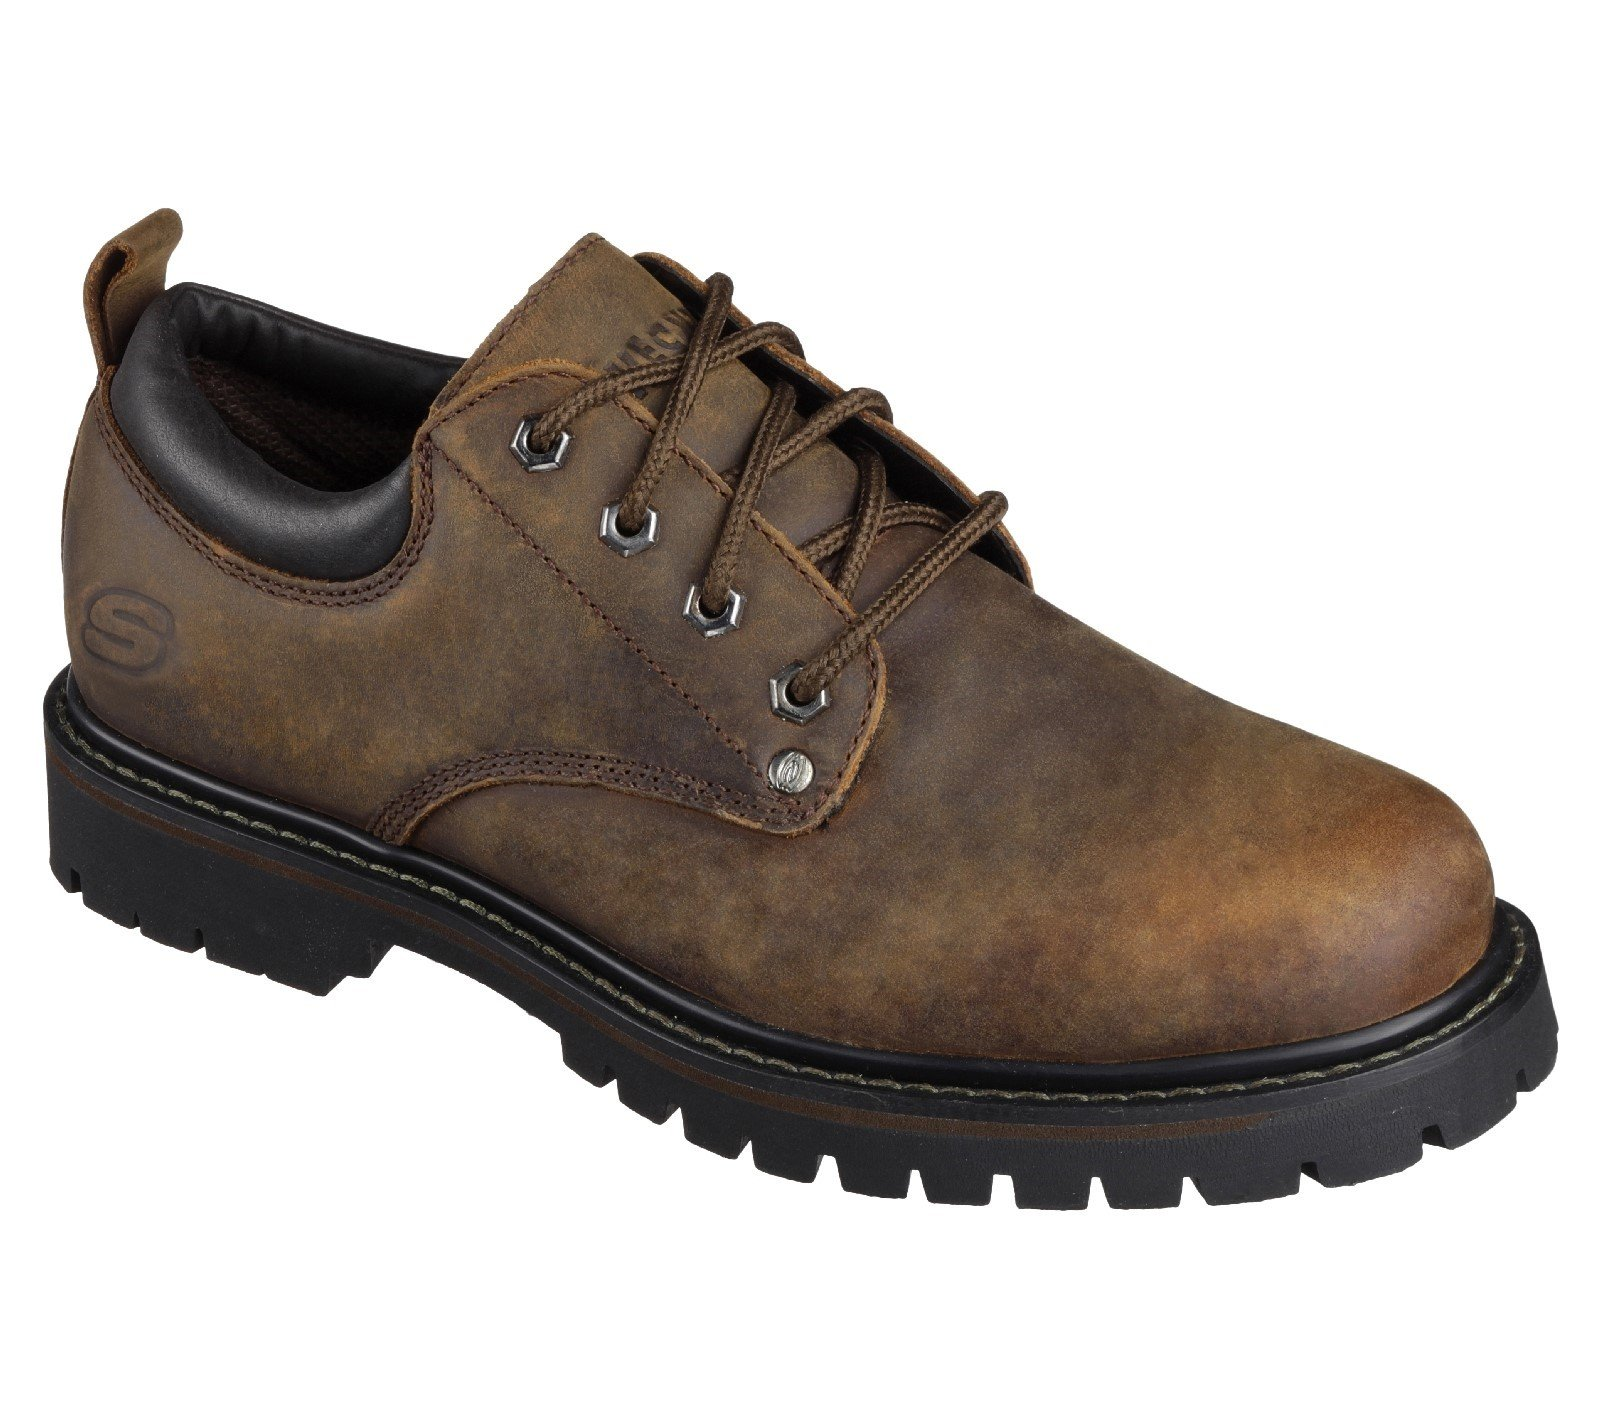 Skechers Unisex Tom Cats Lace Up Shoe Various Colours 24580 - Dark Brown 6